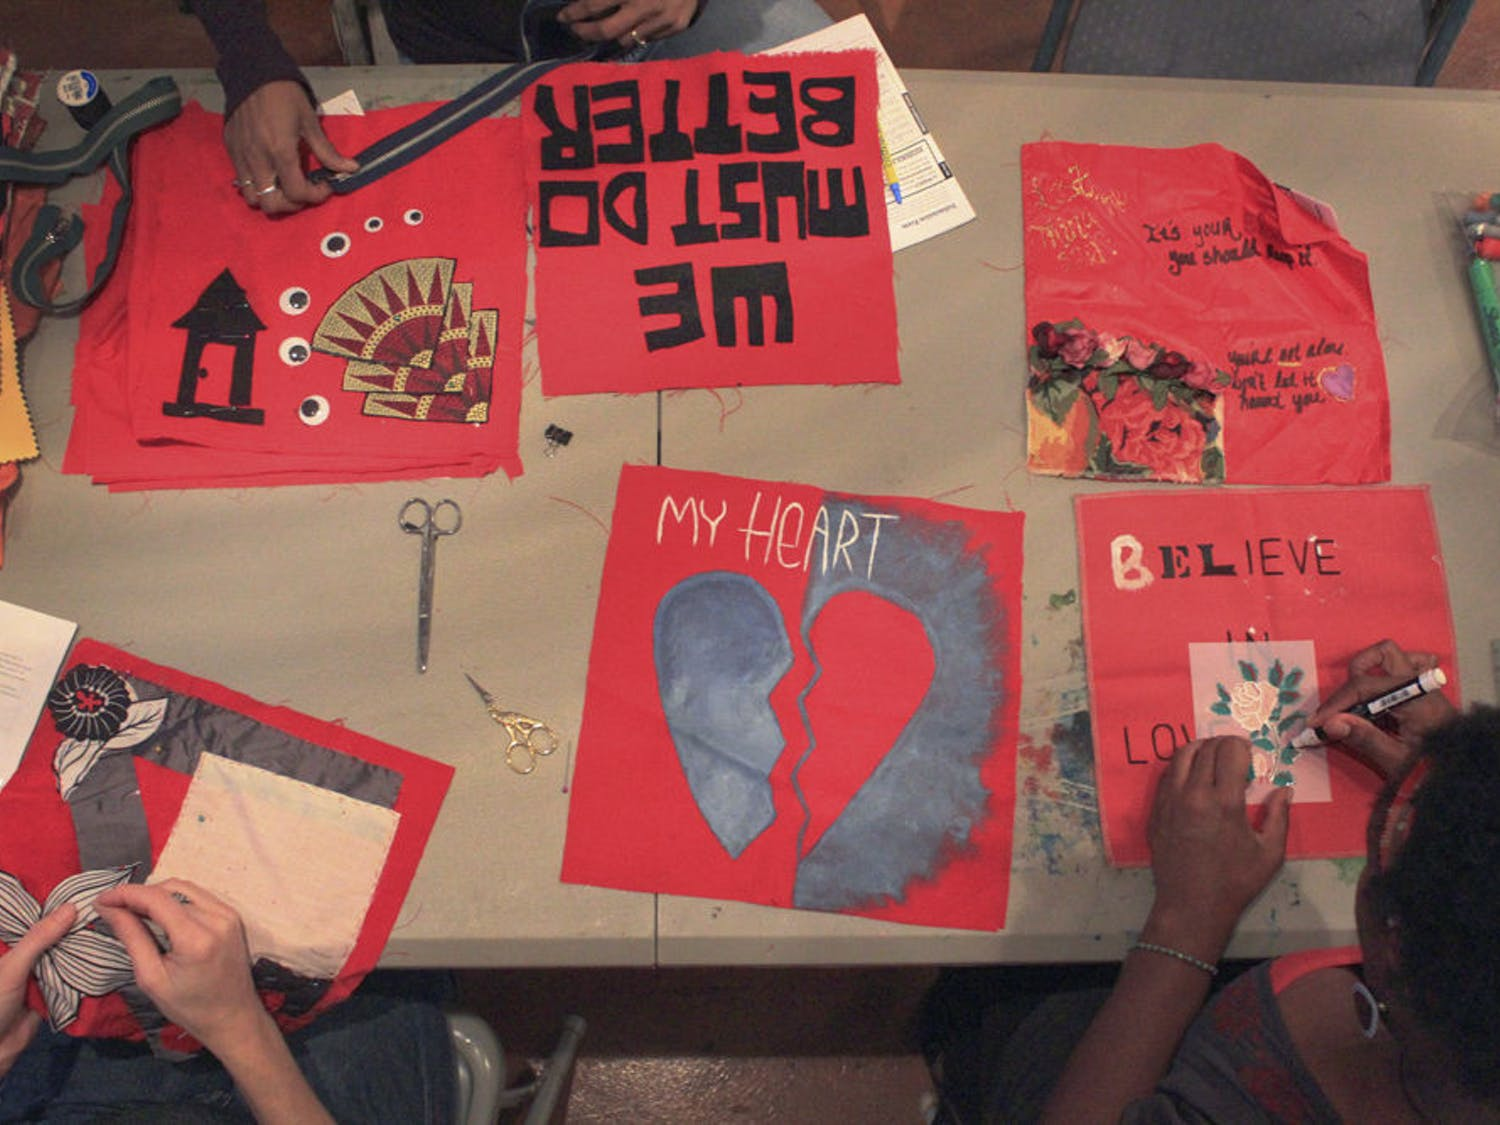 Sexual assault survivors came together to quilt their stories Oct. 19, 2015, at Wild Iris Books, a feminist bookstore at 22 SE 5th Ave. The evening was the last of three monthly workshops at Wild Iris where participants created squares for the Monument Quilt, a project that collects stories from rape and abuse survivors on red fabric squares and displays them in public spaces around the U.S.